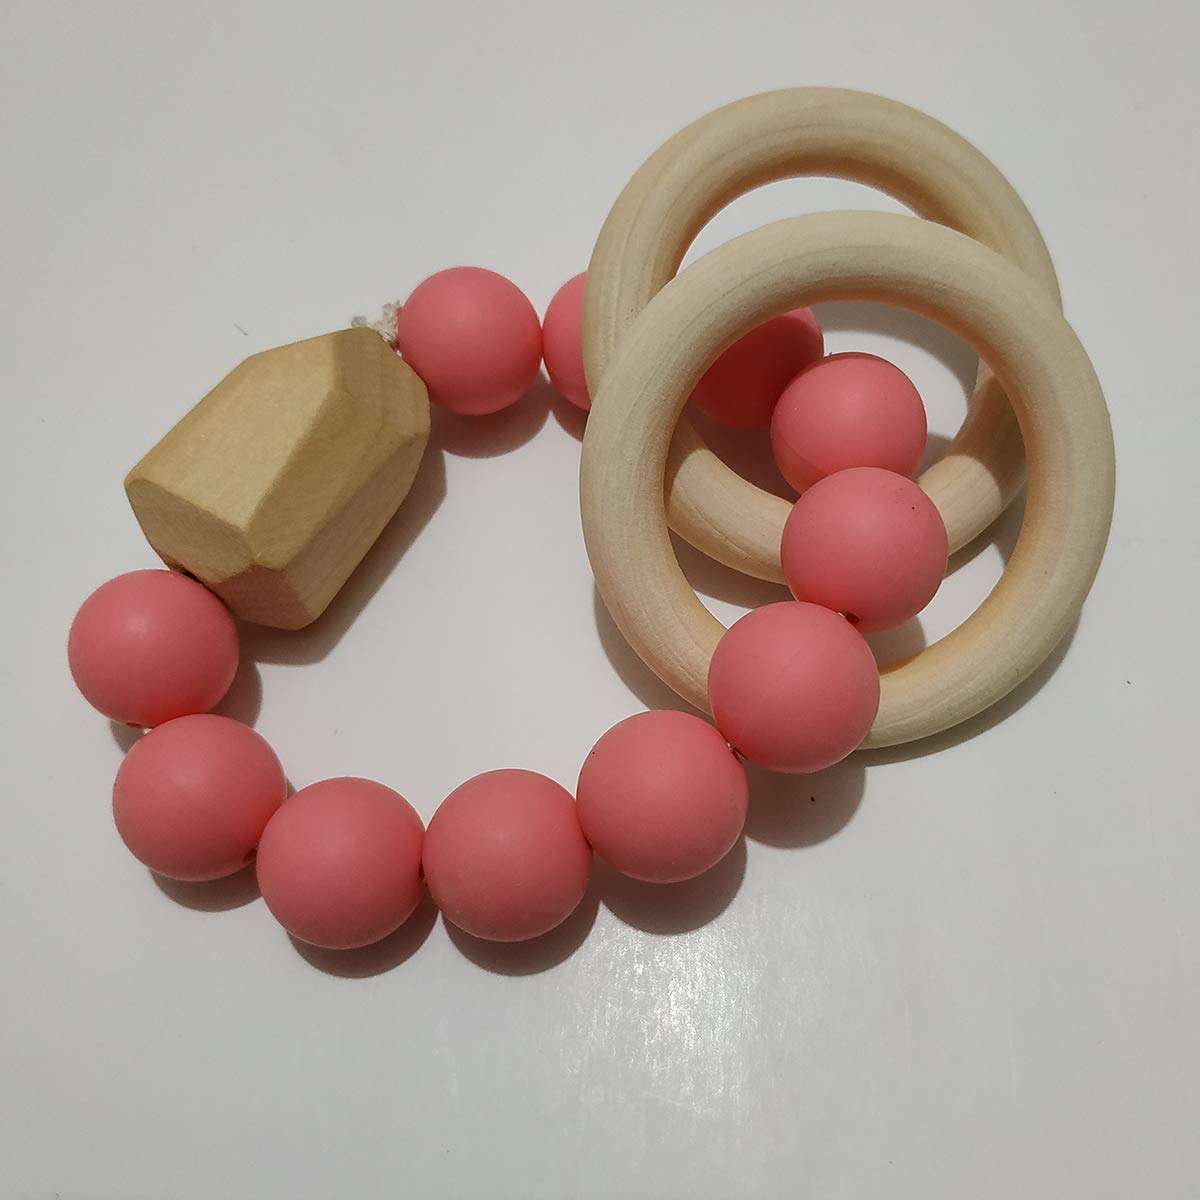 Mint Green Alenybeby 1pcs Mint Green Baby Teething Bracelet Natural Wood Teether Ring BPA-Free Silicone Teething Beads Toy